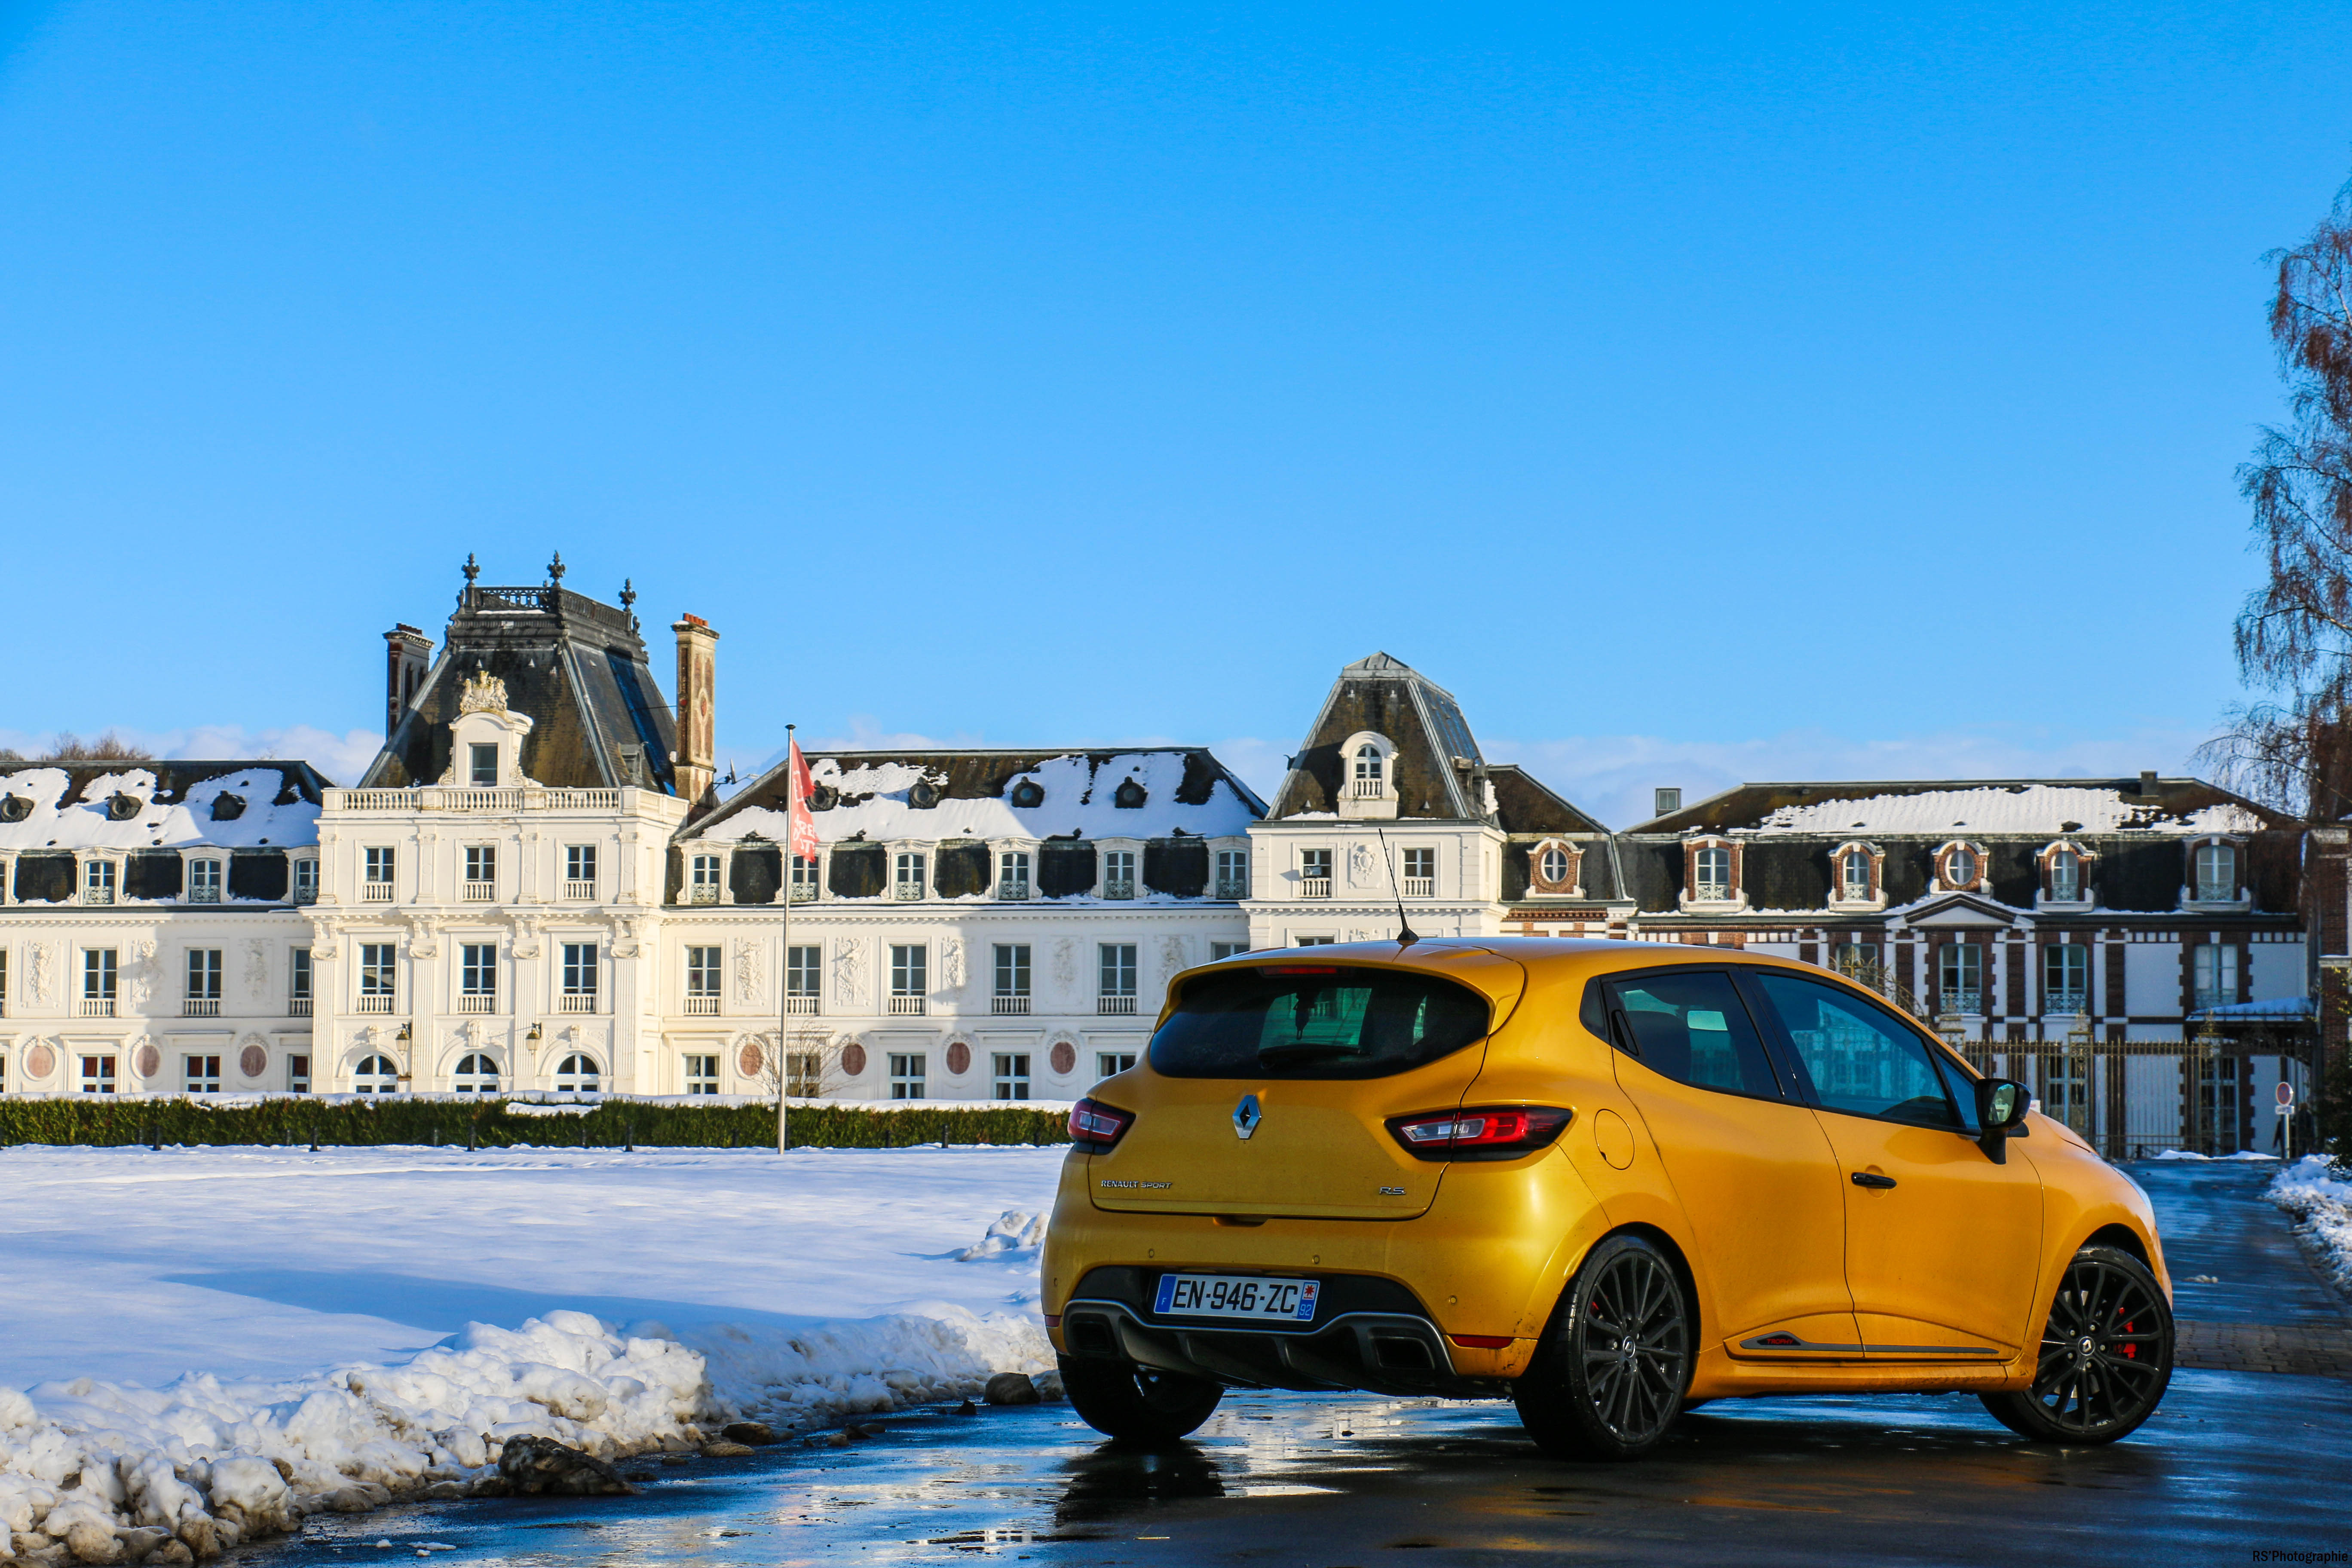 RenaultclioIVRSTrophy11-renault-clio-RS-trophy-arriere-rear-Arnaud Demasier-RSPhotographie